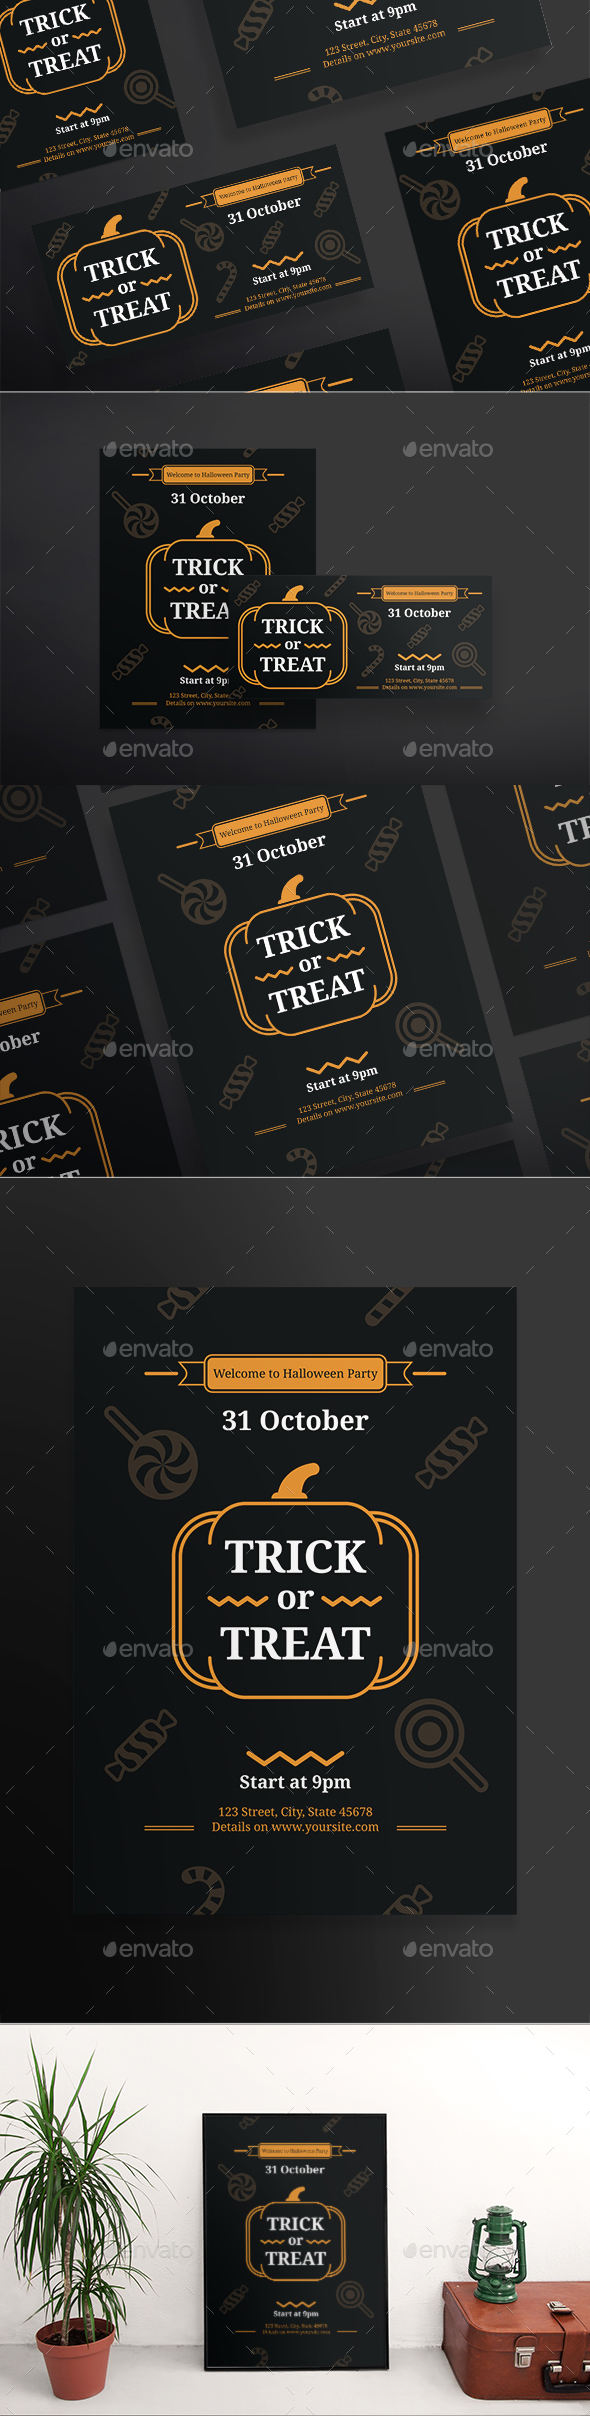 Trick Or Treat Flyers - Holidays Events